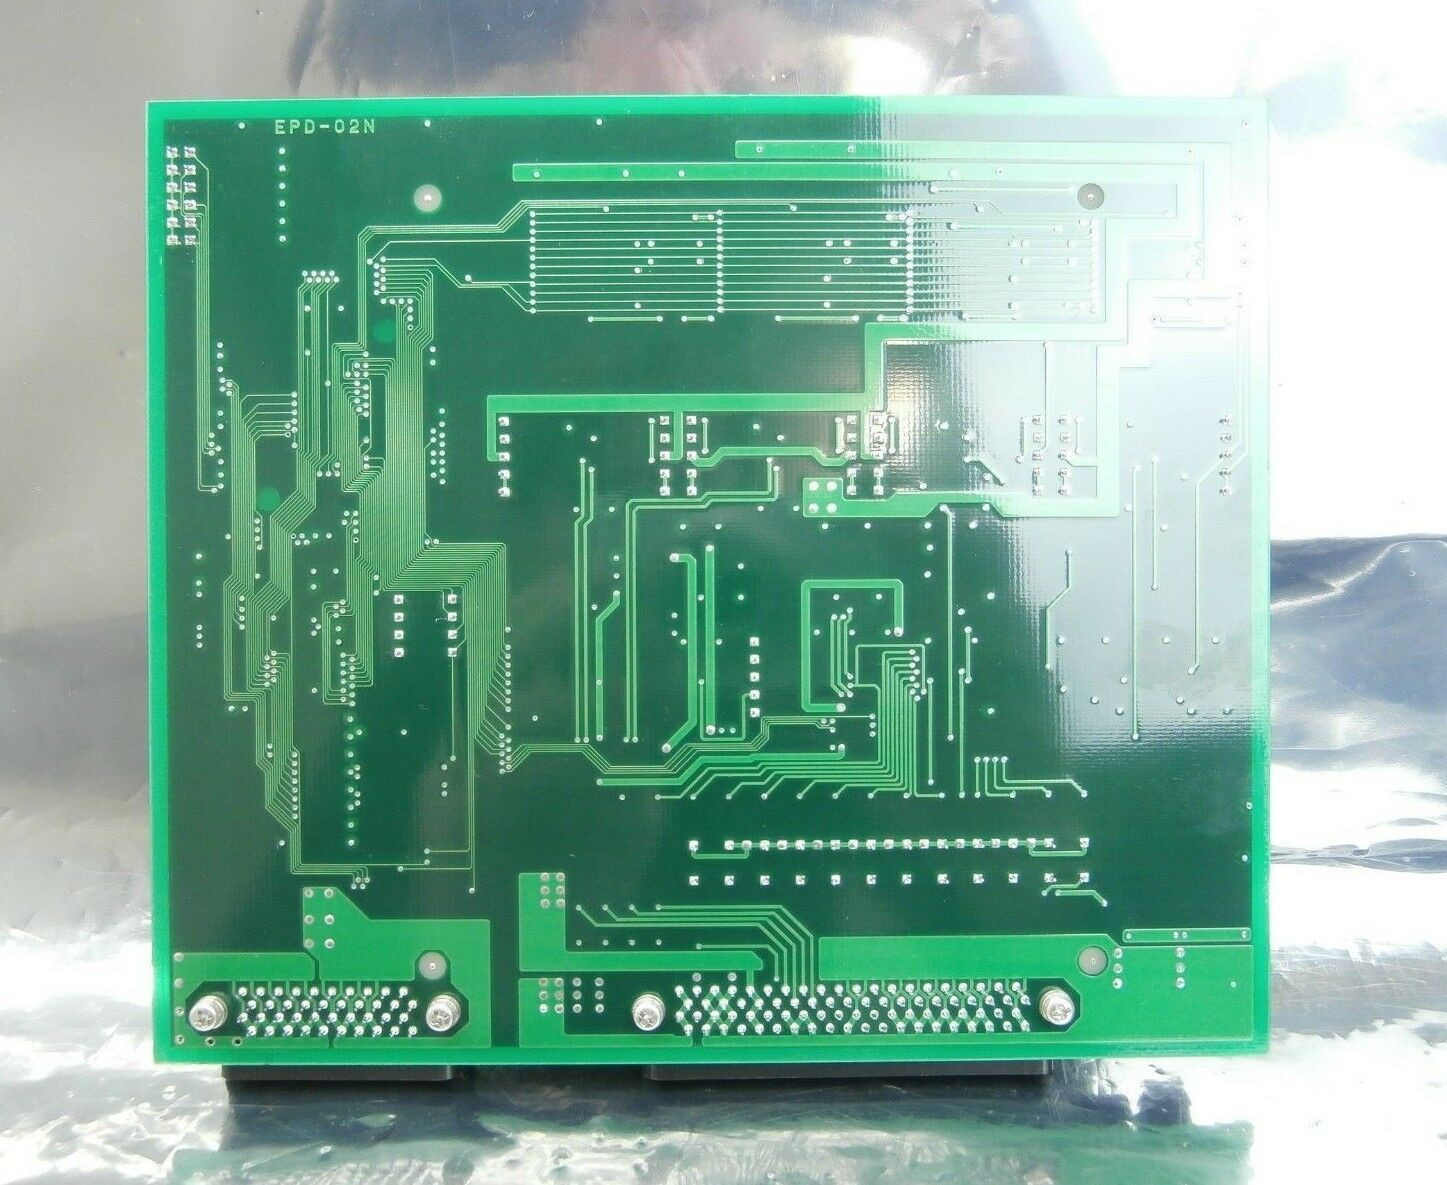 Hitachi EPD-02N Processor PCB Card M-712E Shallow Trench Etcher Used Working